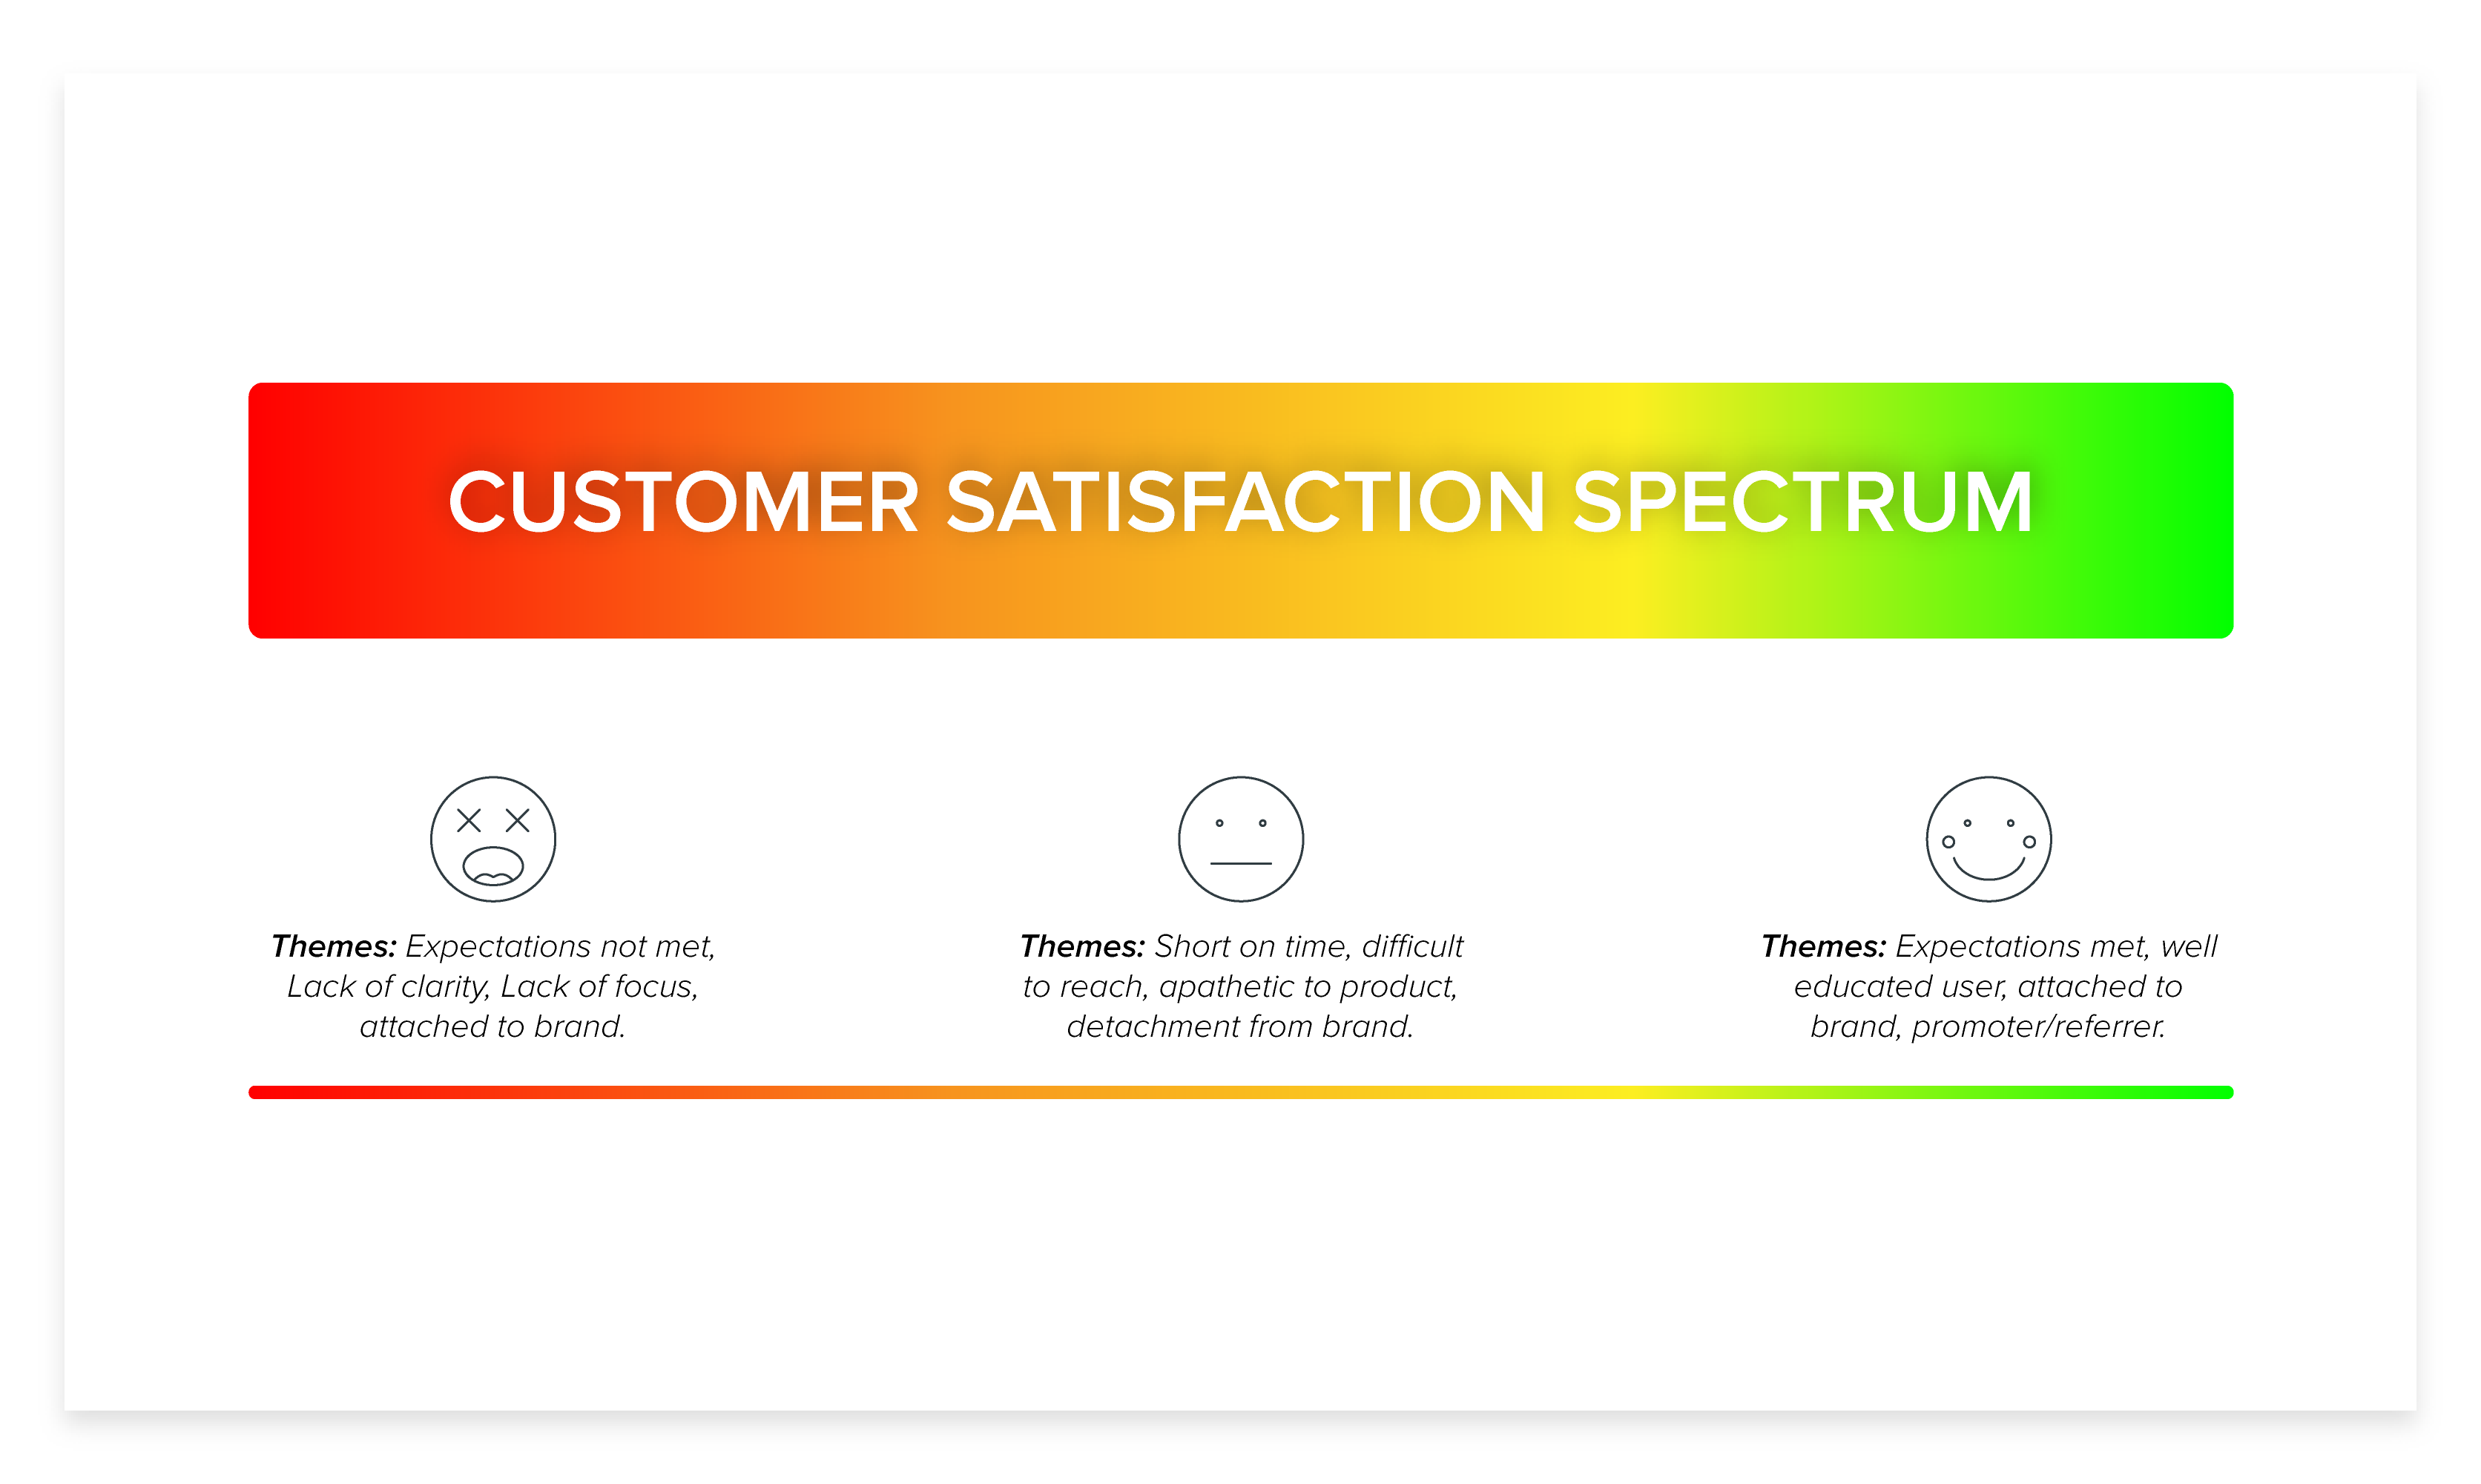 Cust-satisfaction-spect@3x.png